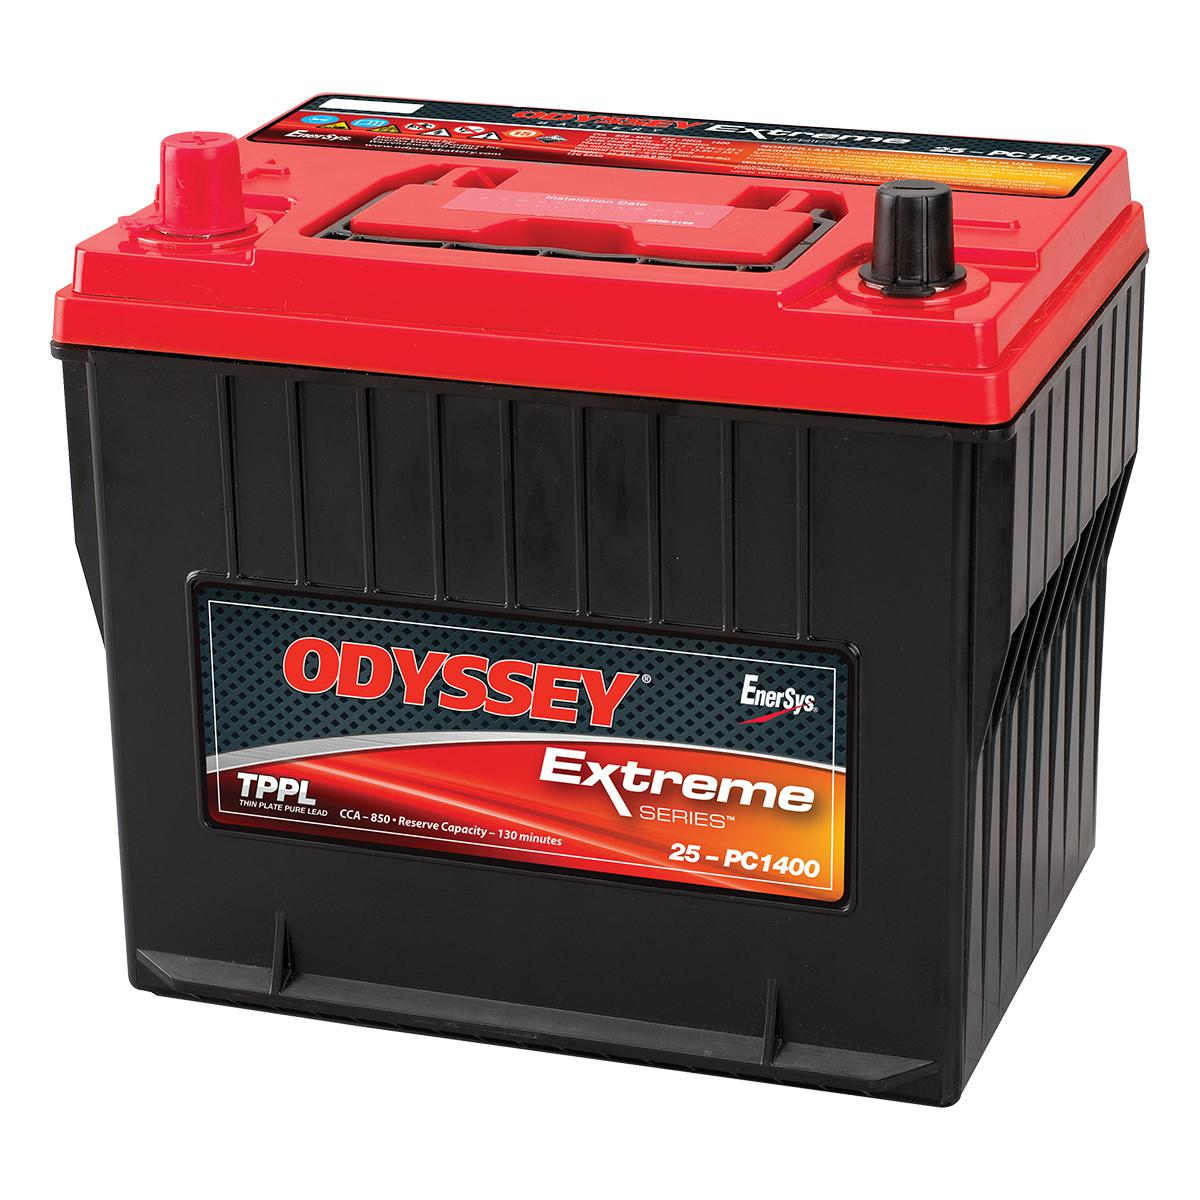 25 pc1400 odyssey 12v 65ah extreme series battery. Black Bedroom Furniture Sets. Home Design Ideas